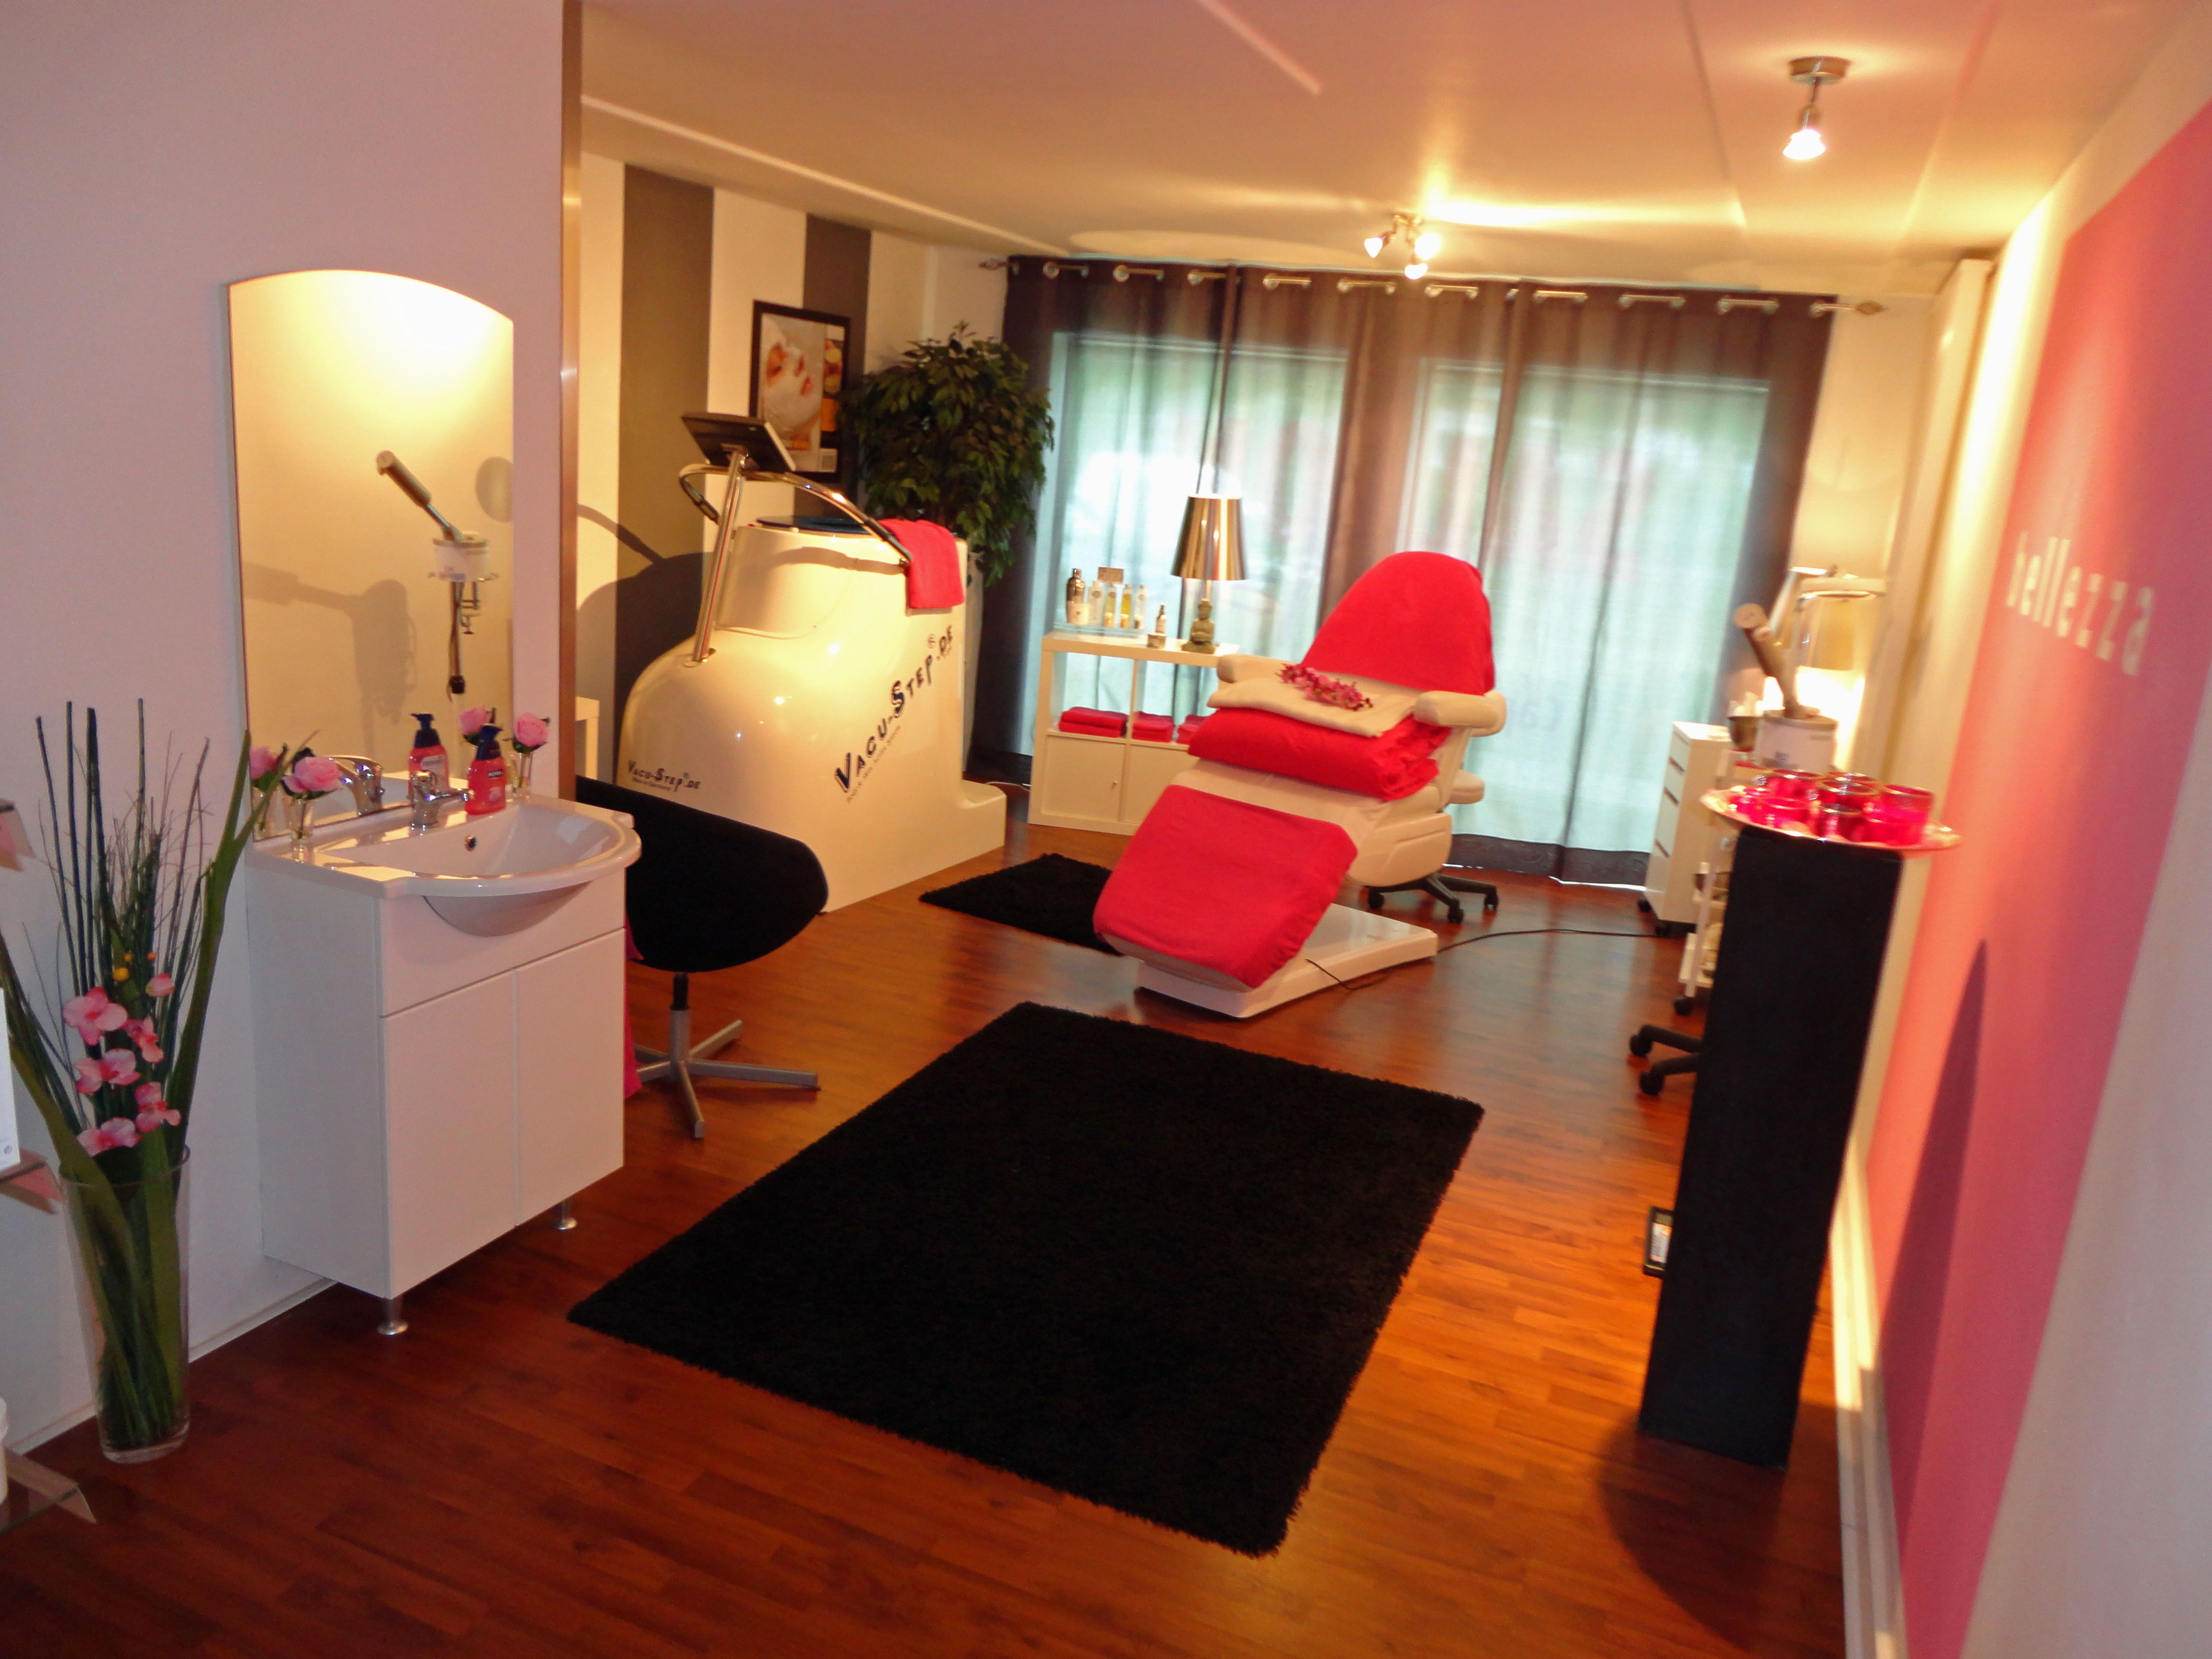 Schoonheidssalon / afslankcentrum / beauty salon / weightloss centre ...